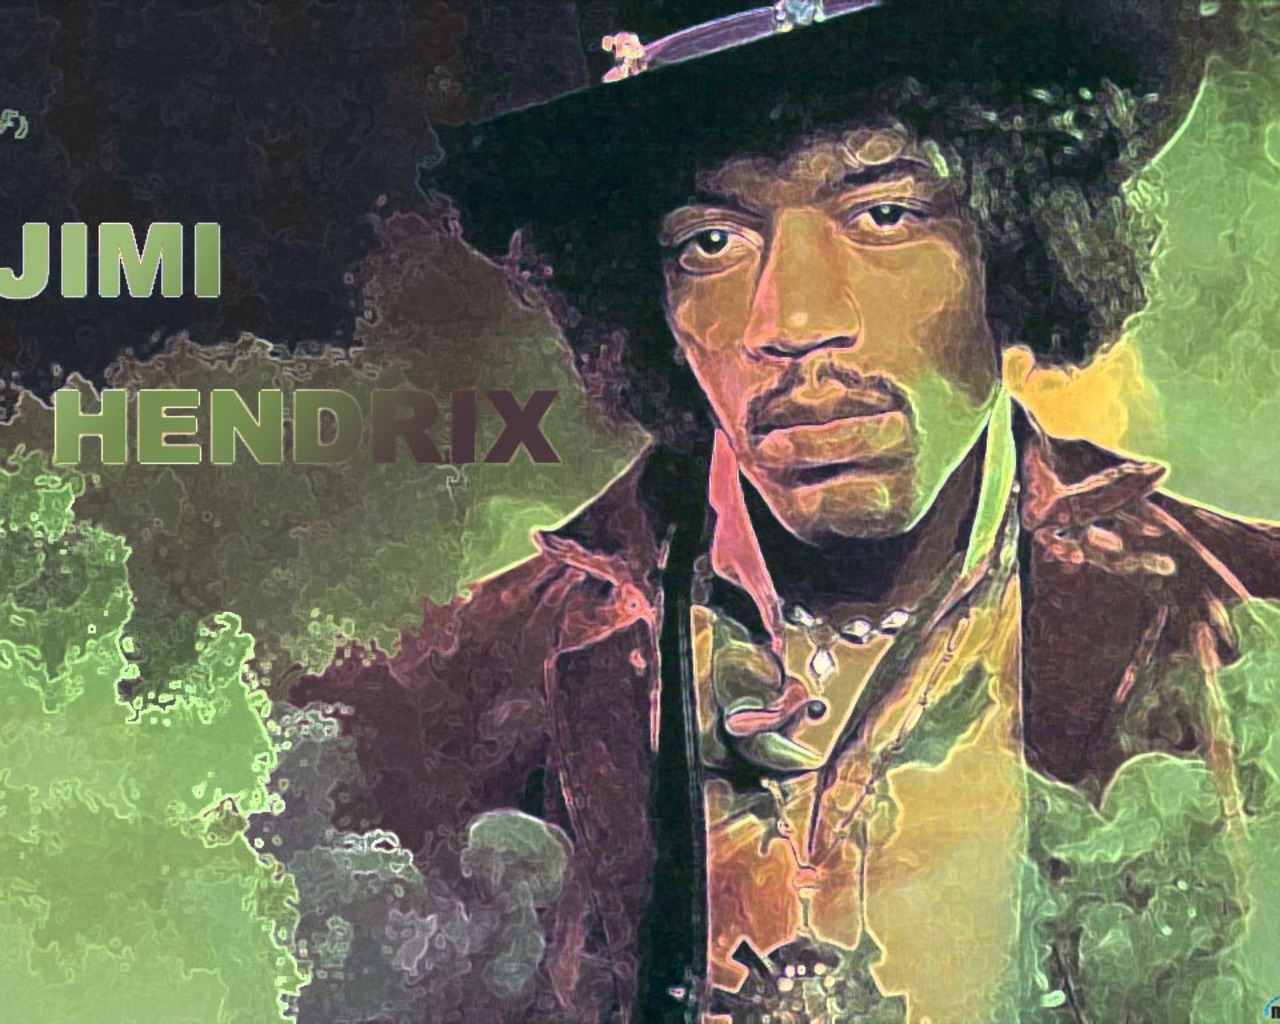 jimi hendrix wallpaper 10 - photo #42